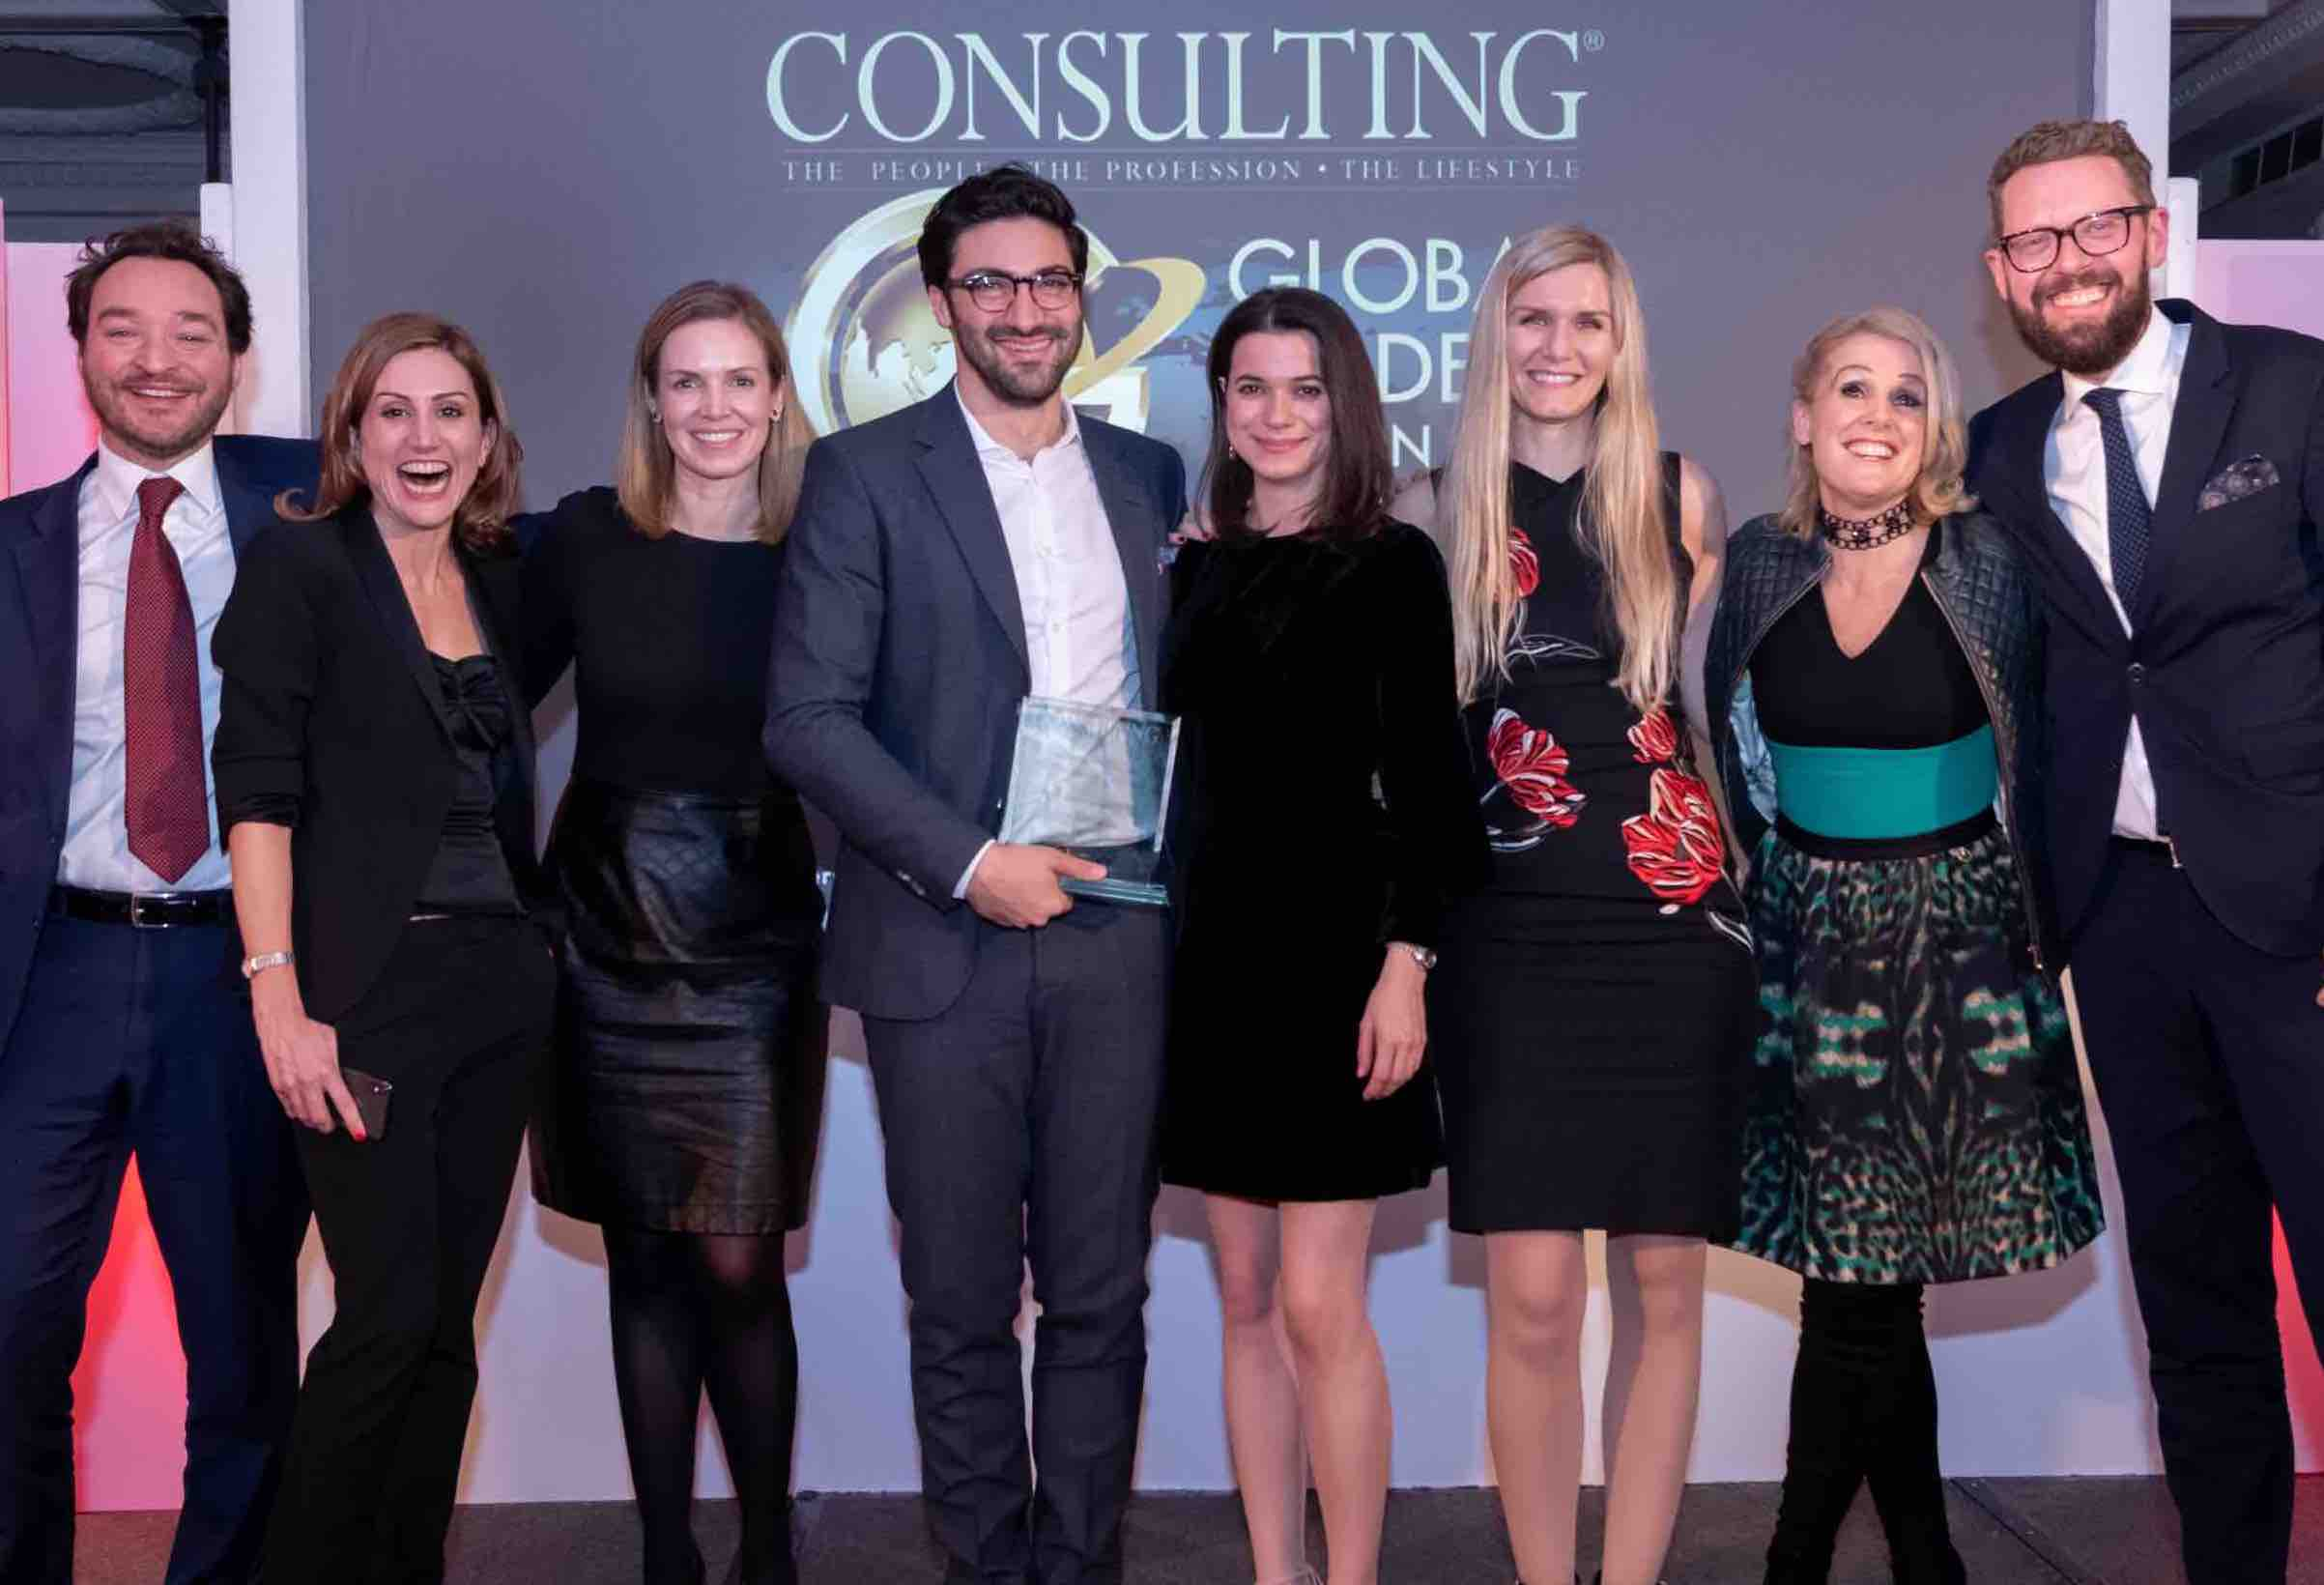 Photos: Global Leaders in Consulting Gala